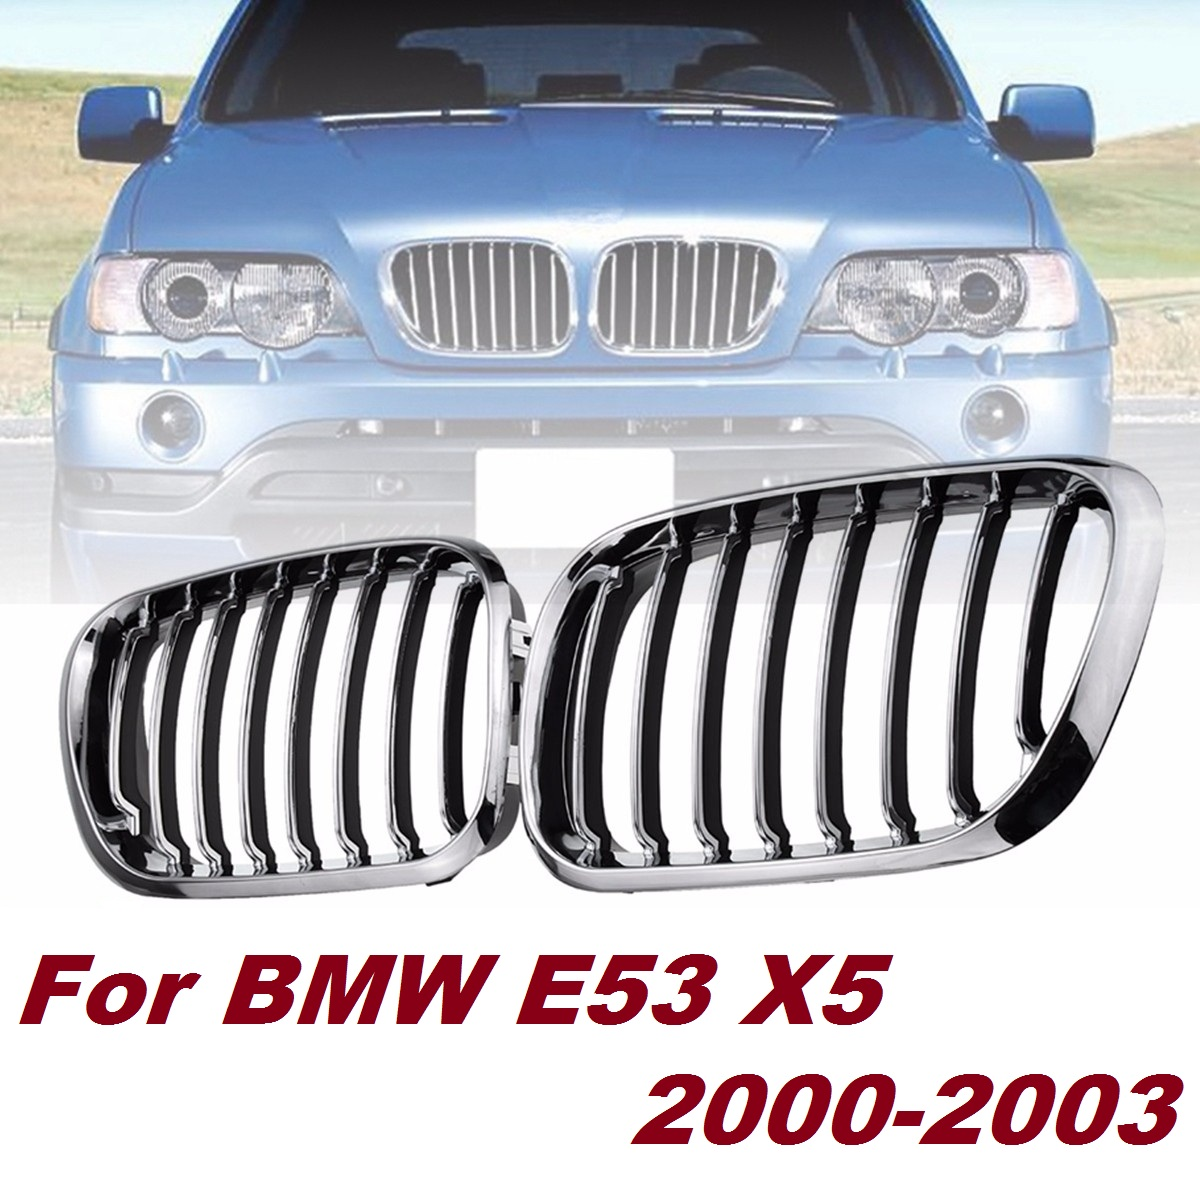 Pair Front Hood Kidney Sport Grills Grille Chrome + Black Car Racing Grills For BMW <font><b>E53</b></font> X5 2000 <font><b>2001</b></font> 2002 2003 image